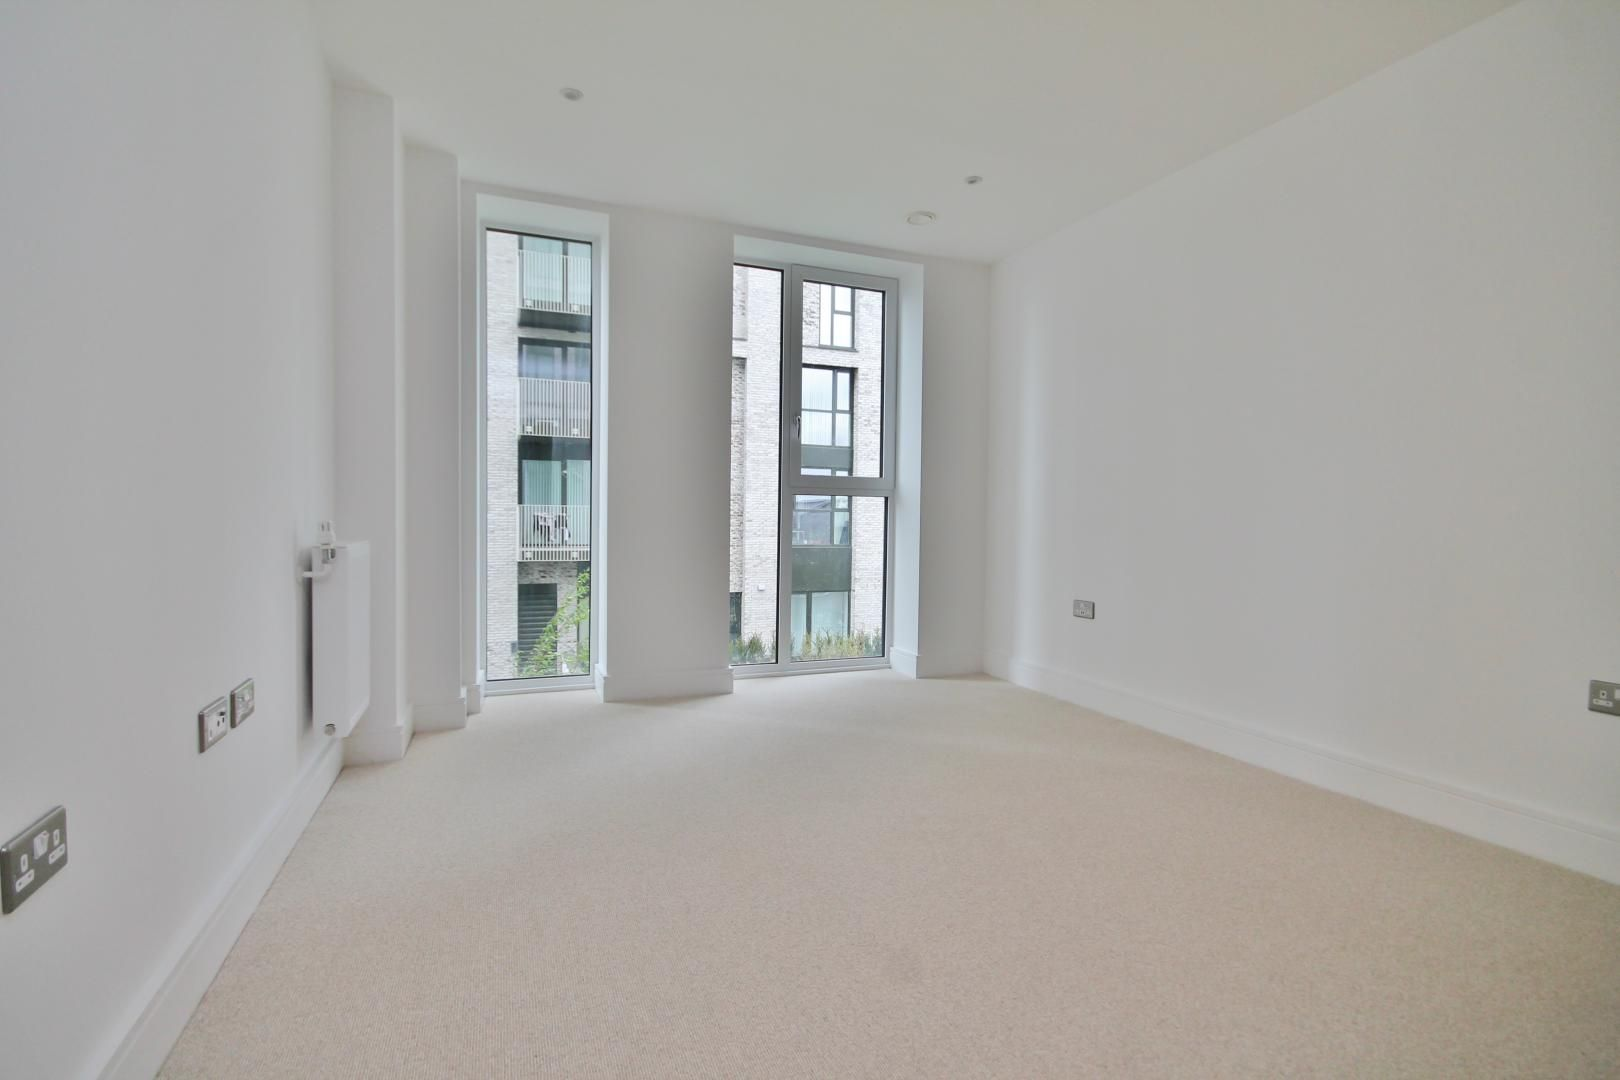 1 bed  for sale in Centurion Tower  - Property Image 4